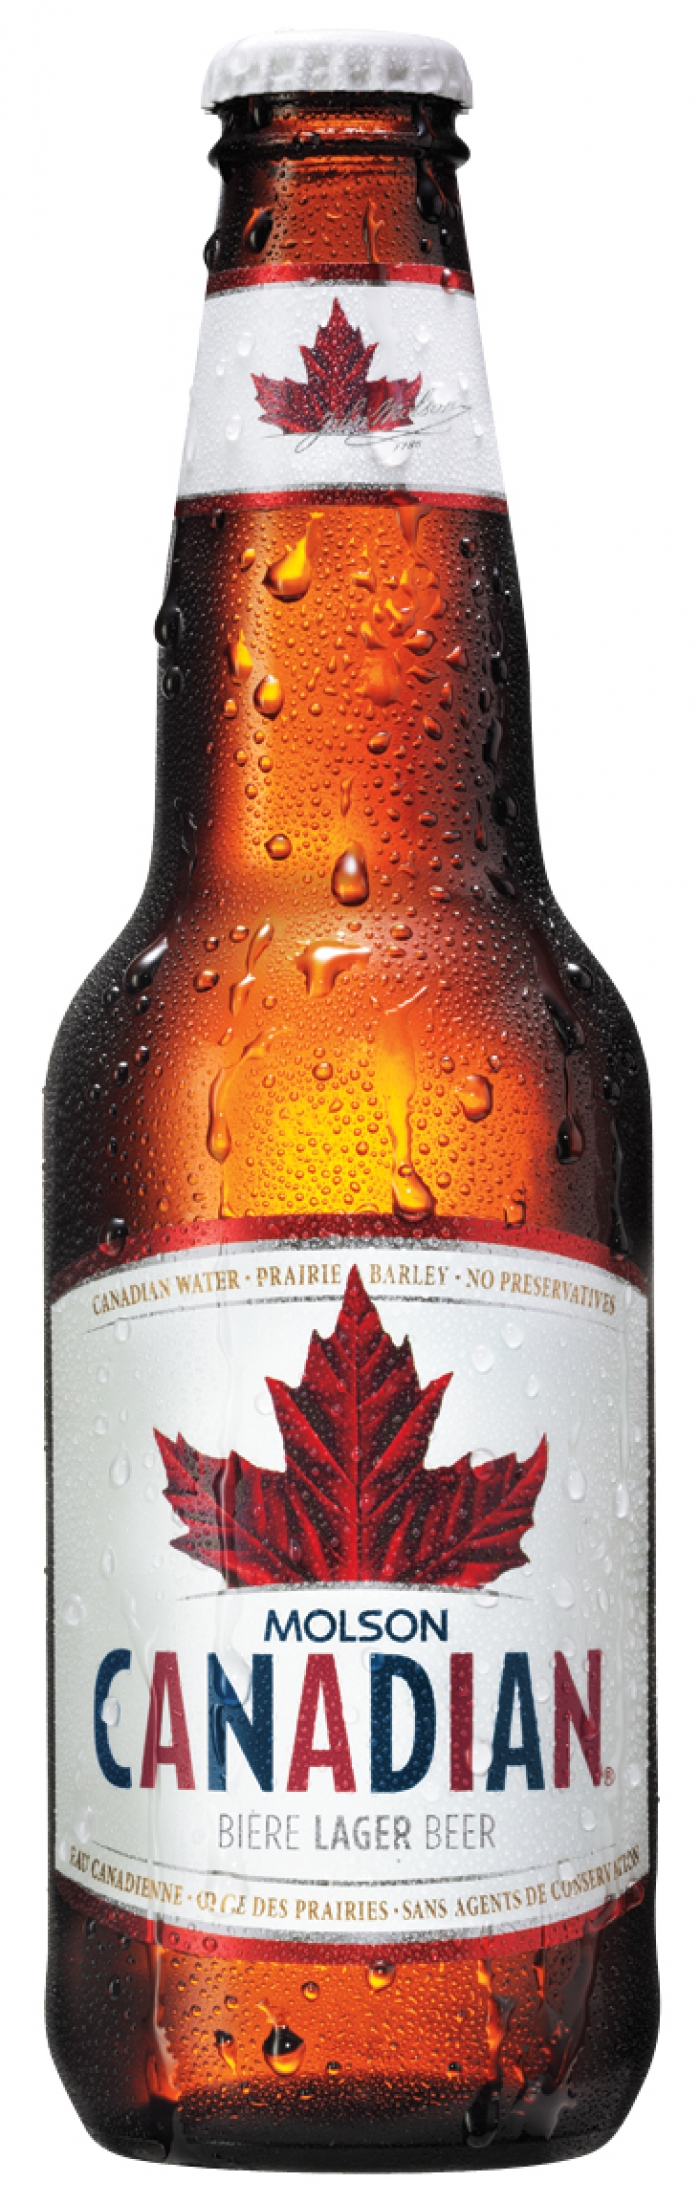 Pin By Mandy Bashore On Canadian Beers Of The World Canadian Beer Canadian Culture